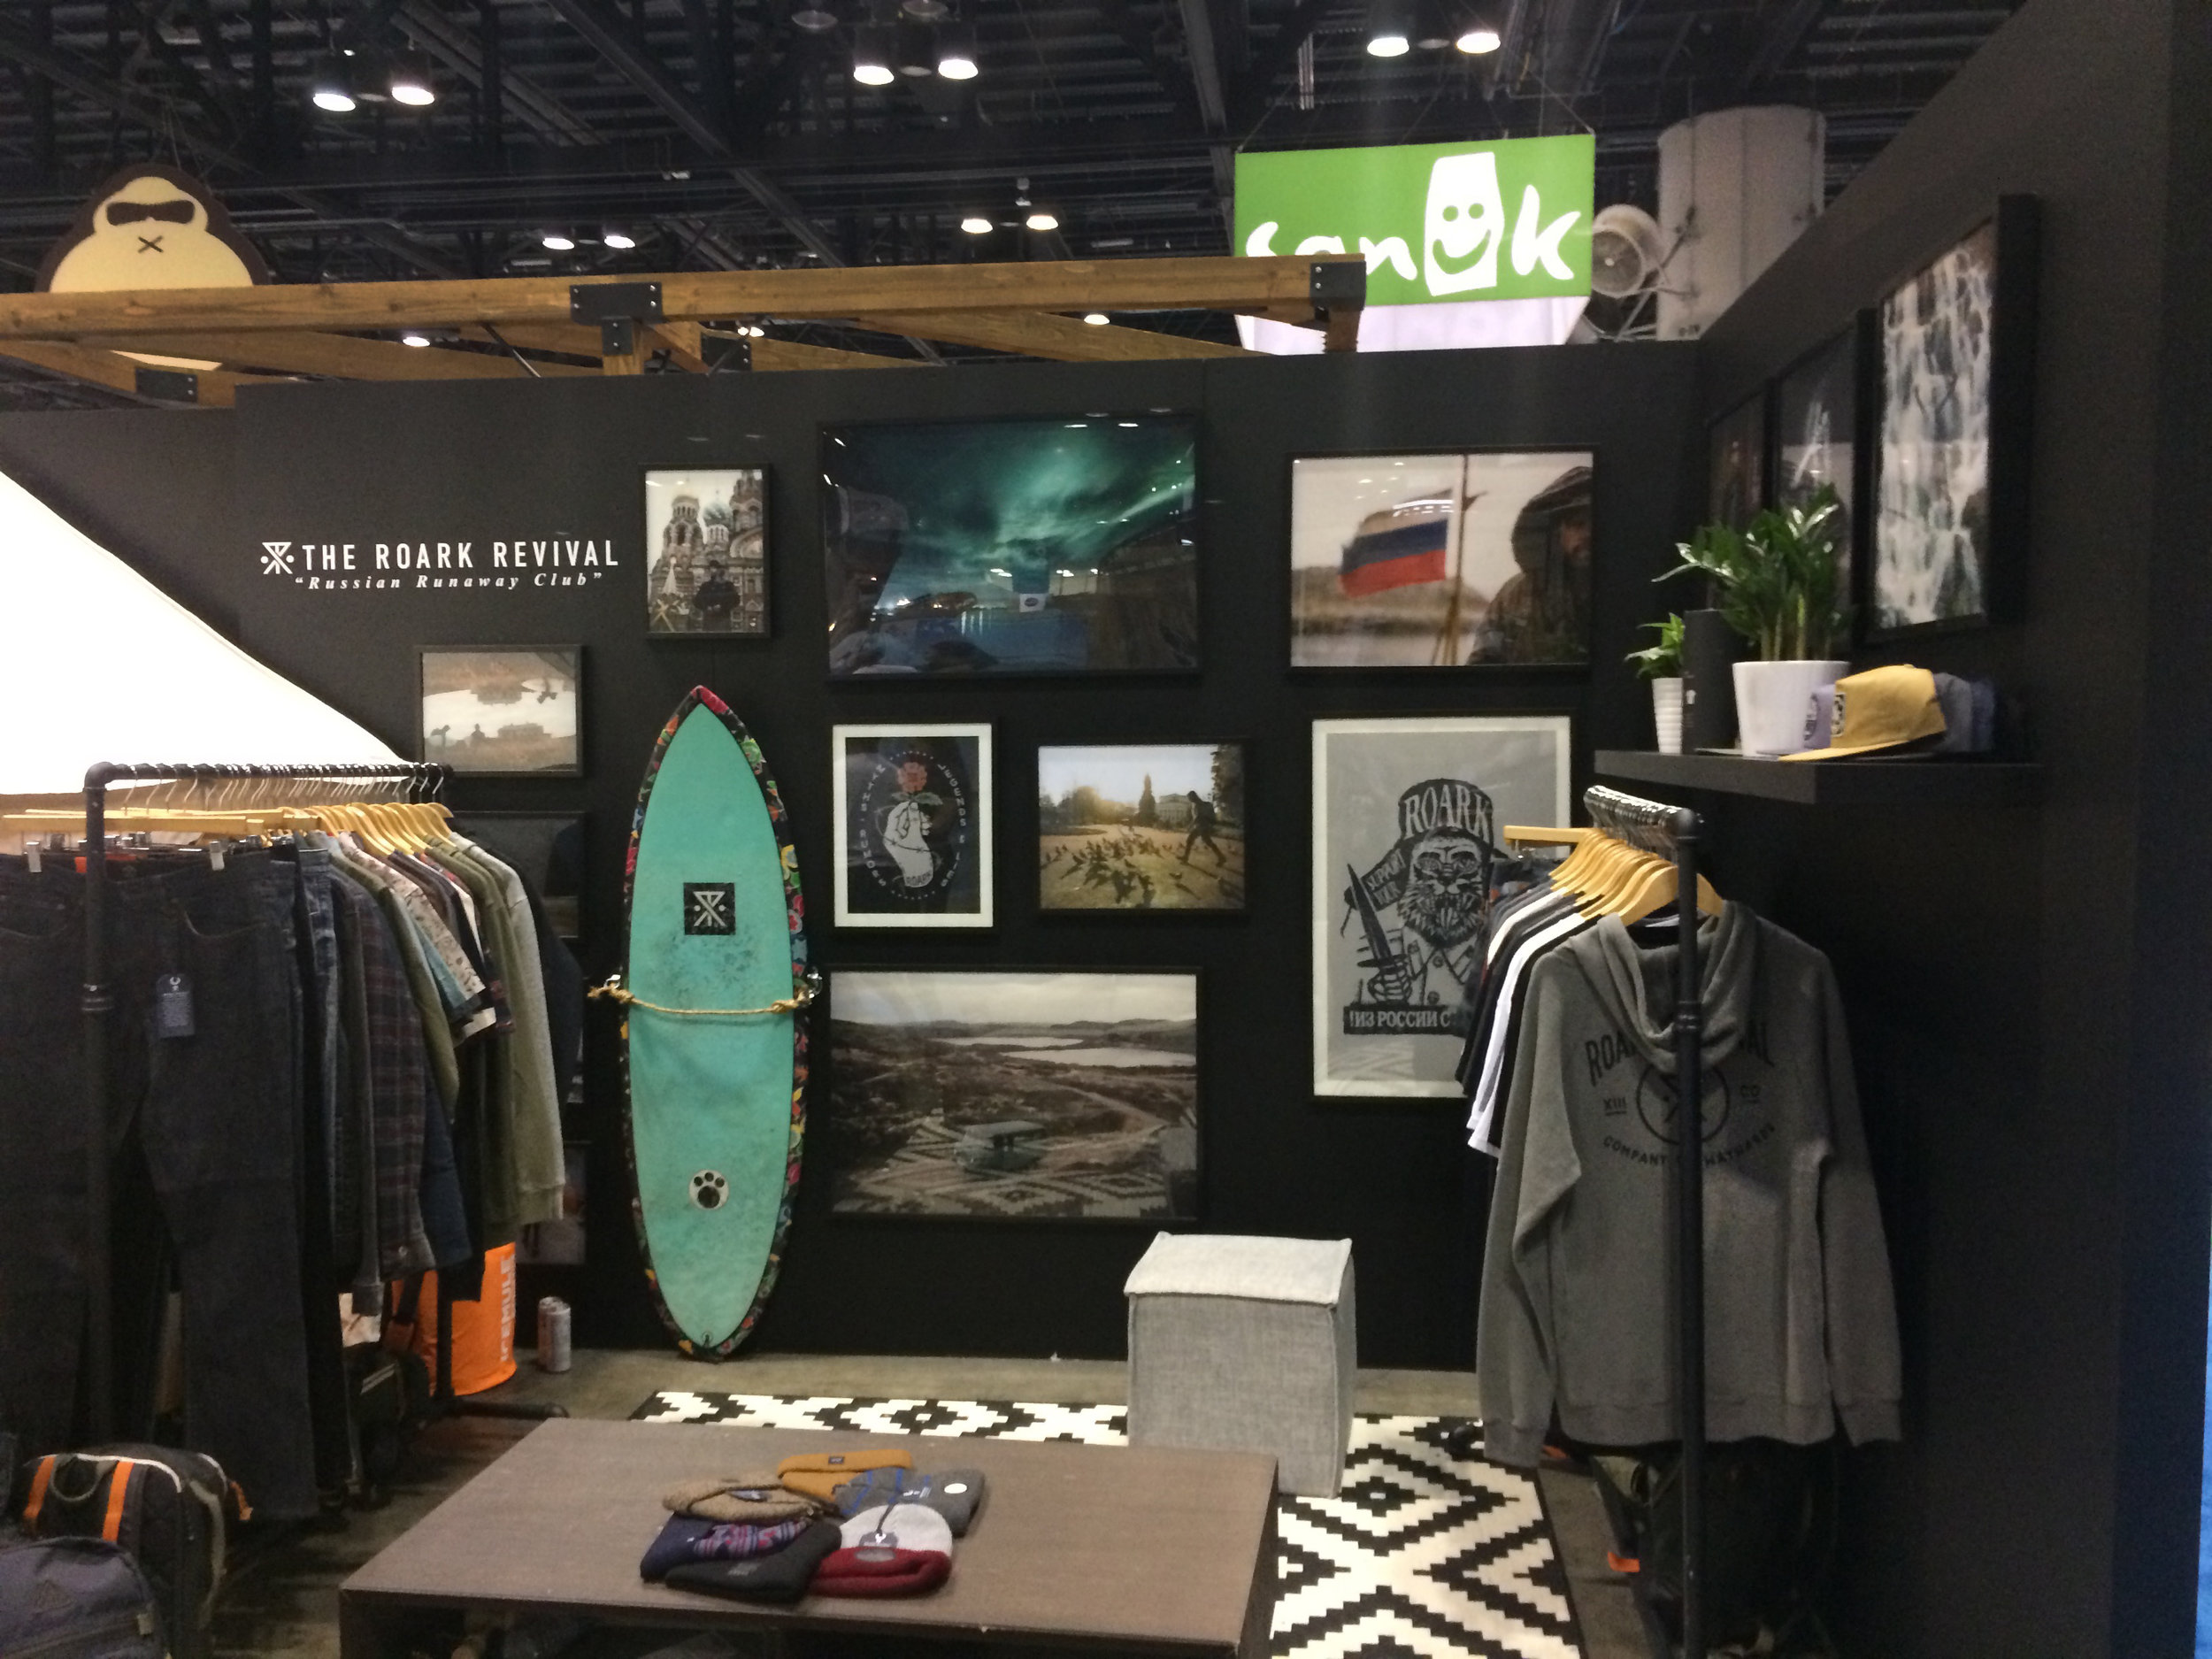 Roark's booth featured images and vibes from their recent trip through Russia.